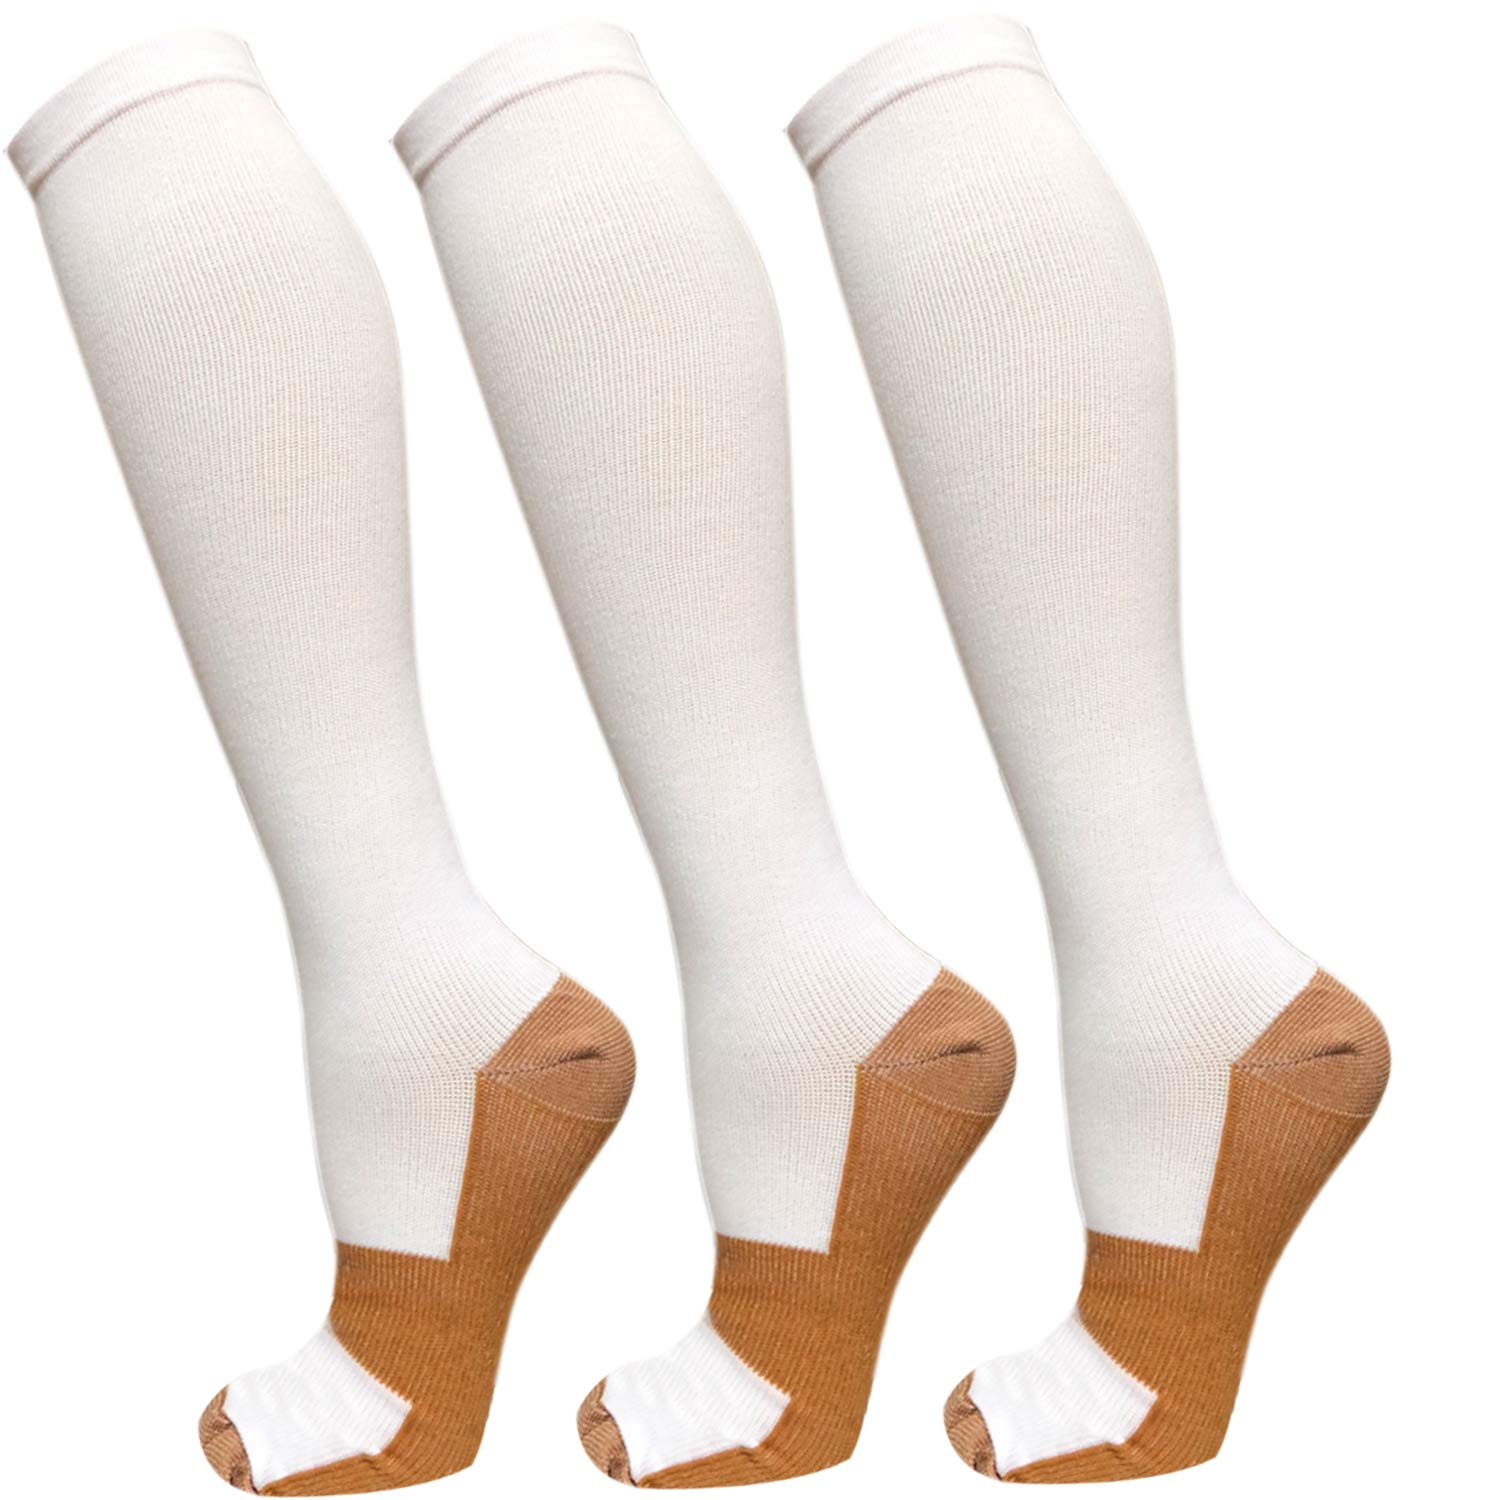 Copper Compression Socks For Men & Women-3/5 Pairs-Best For Running,Athletic,Medical,Pregnancy and Travel -15-20mmHg